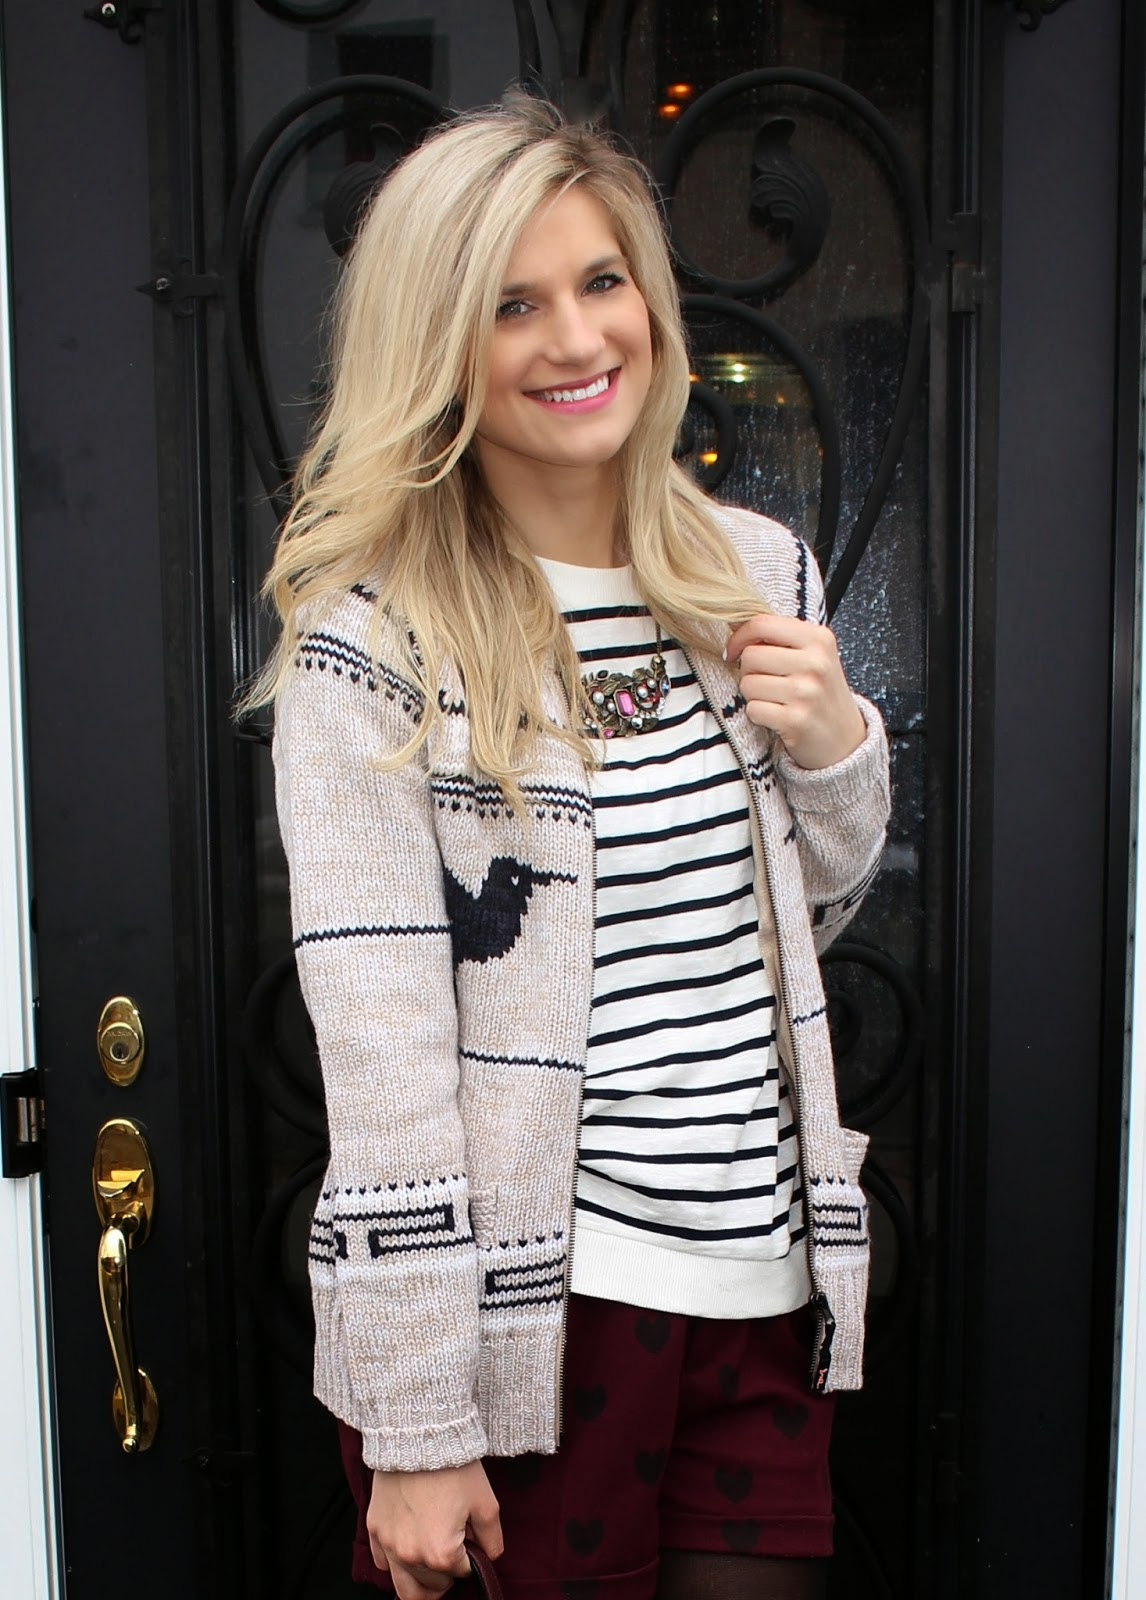 bijuleni,streetstyle,Zara,winter shorts, cardigan, winnersfabfind, stripe,fashion blogger